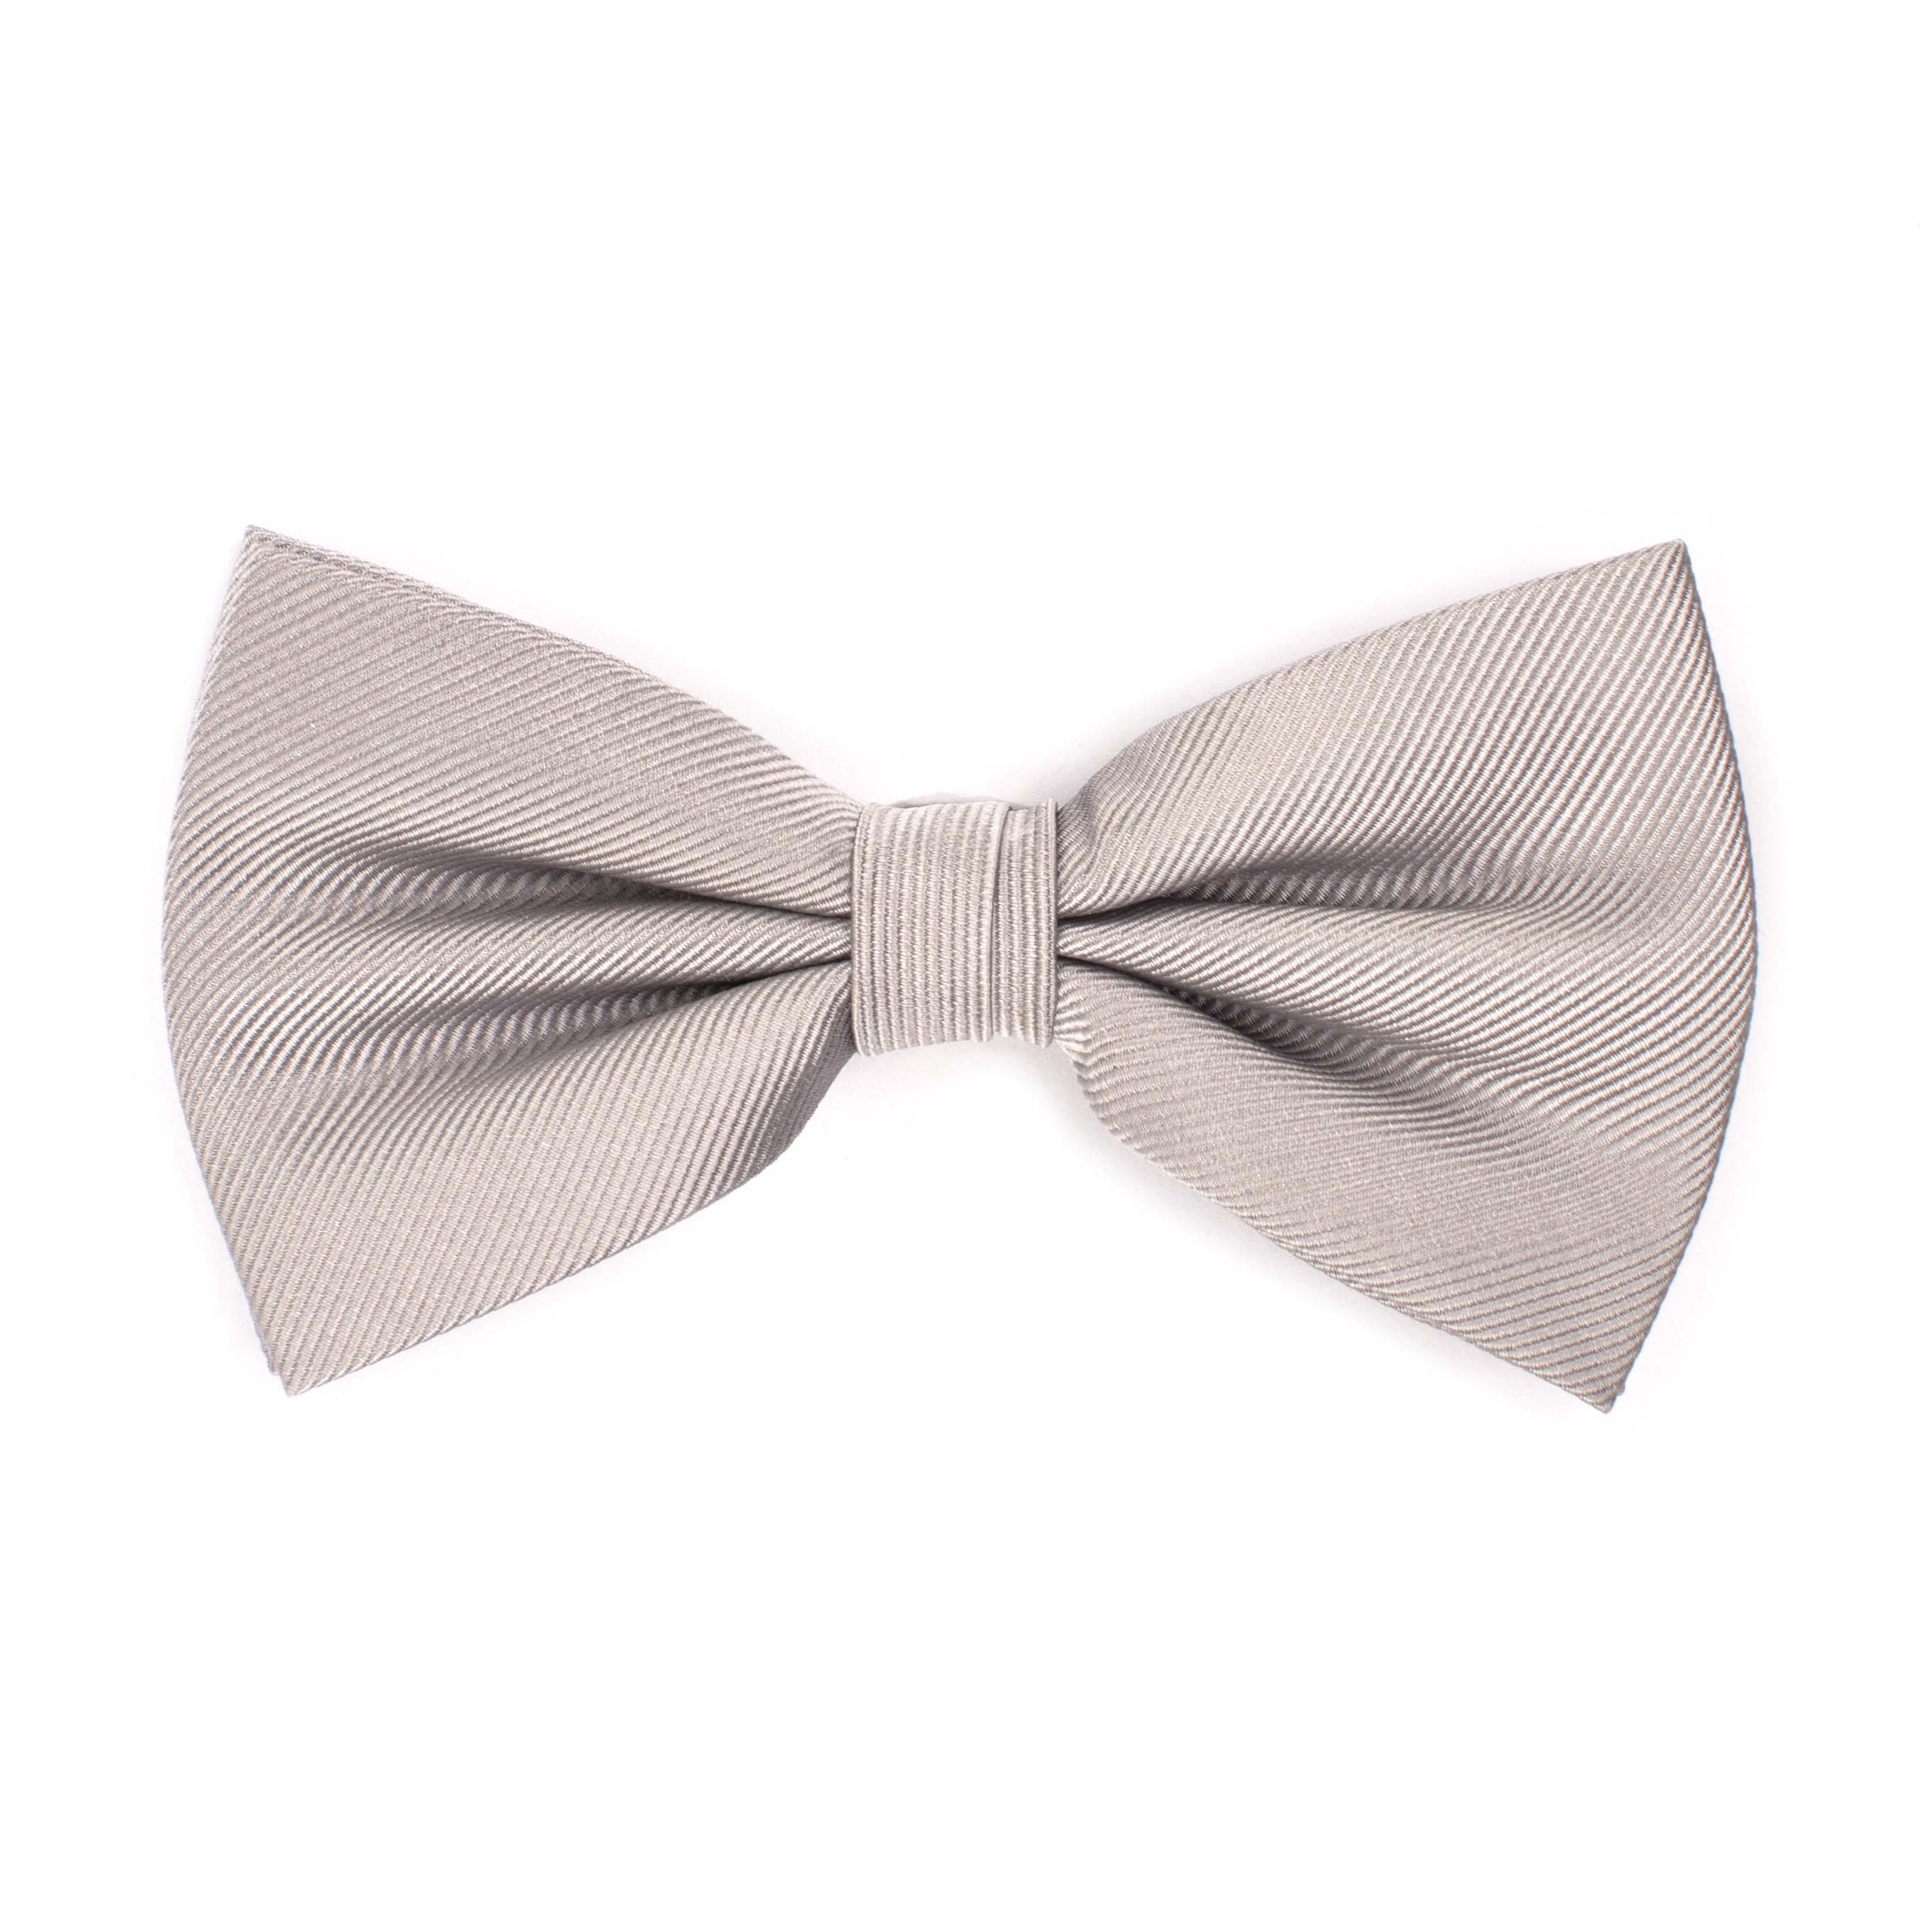 Bow tie classic ribbed silver